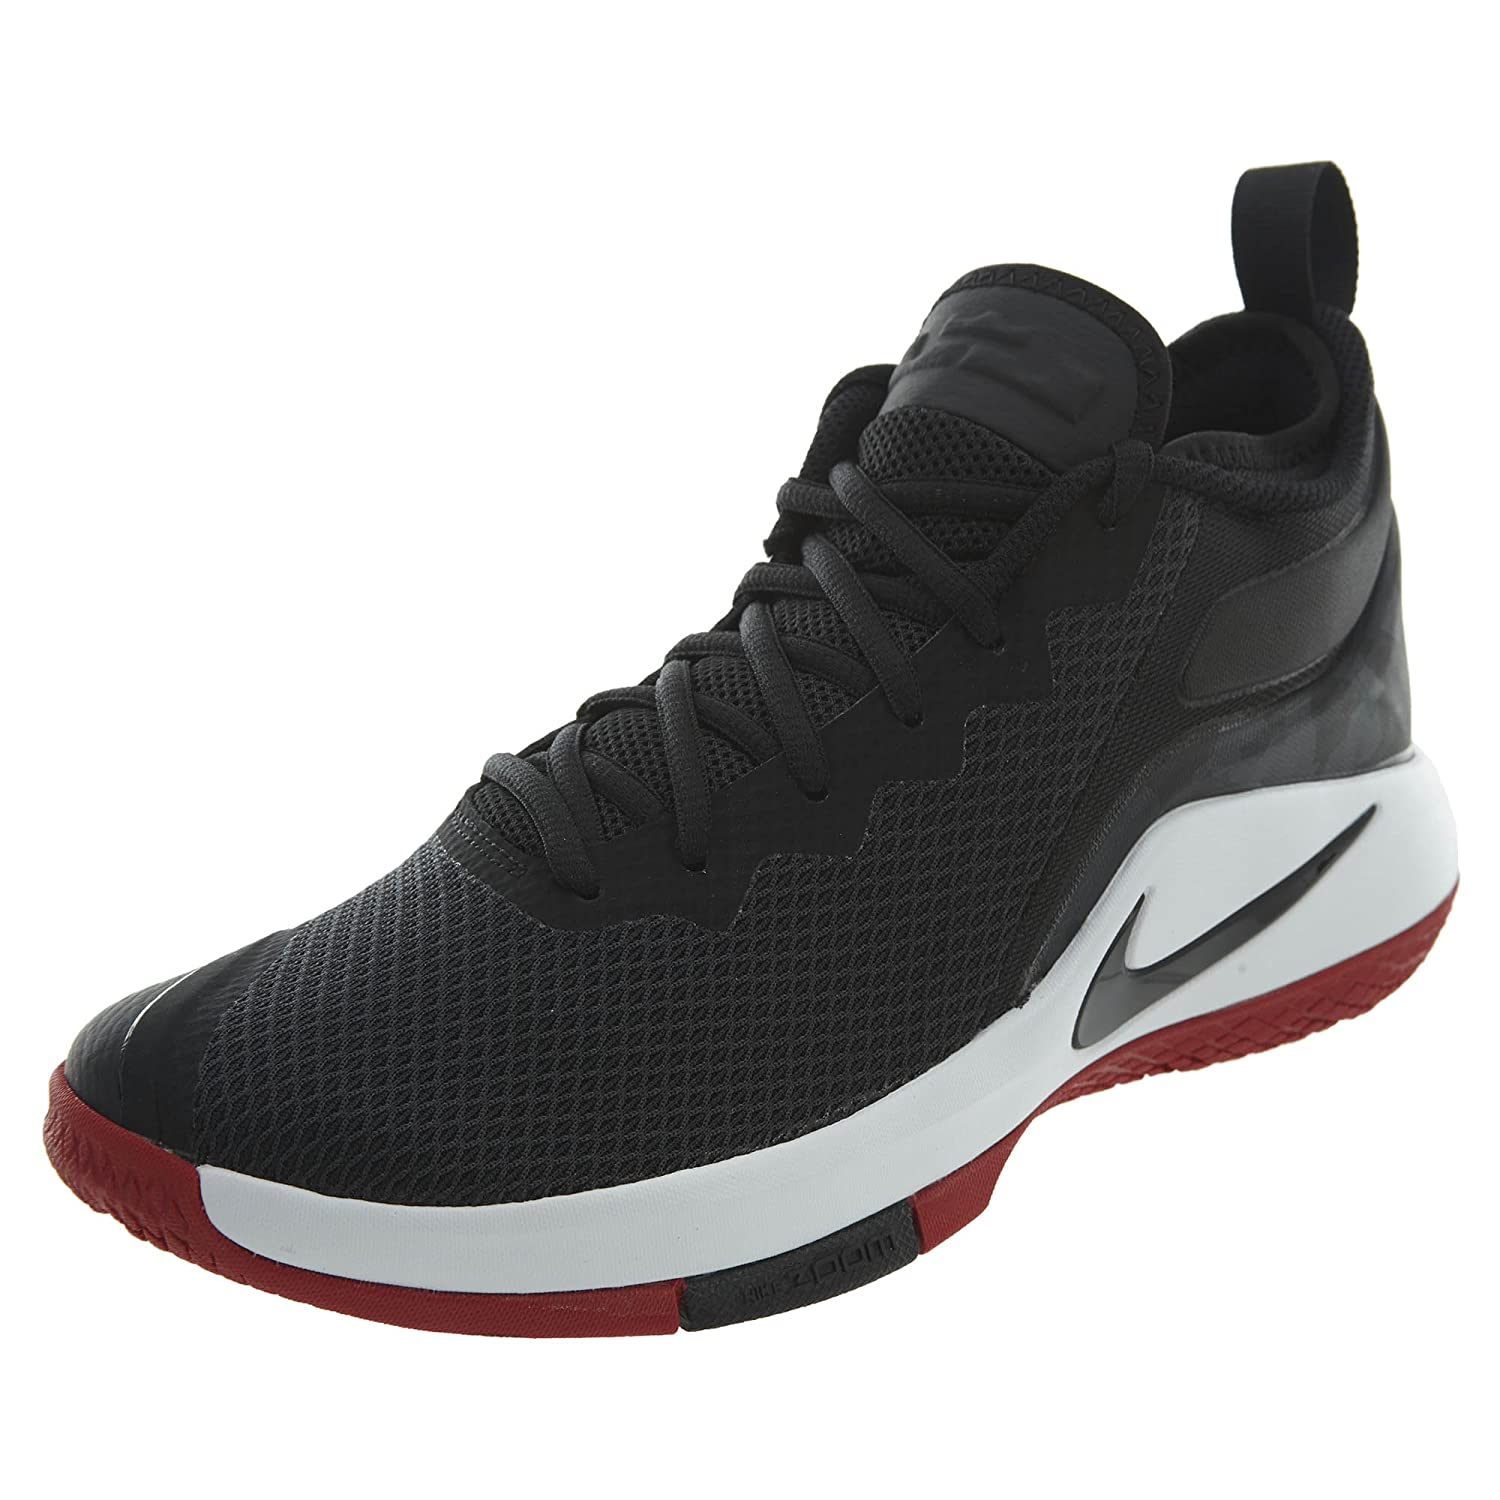 release date 036a7 0e199 Amazon.com | Nike Men's Lebron Witness II Basketball Shoe | Basketball